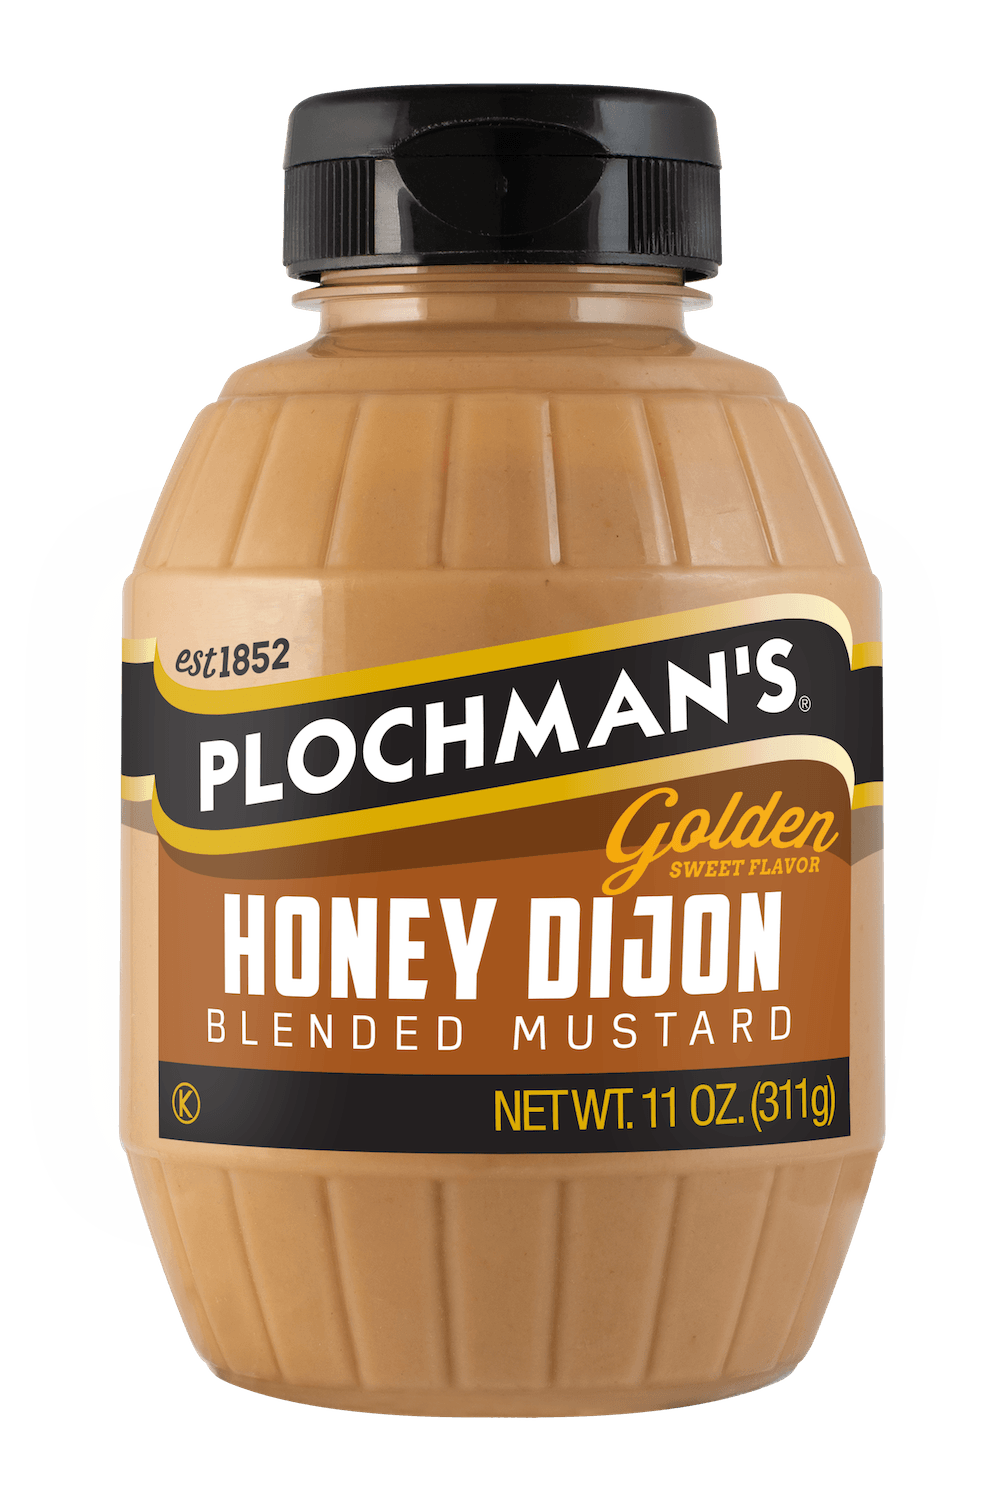 Plochman's Honey Dijon mustard in 11oz barrel bottle